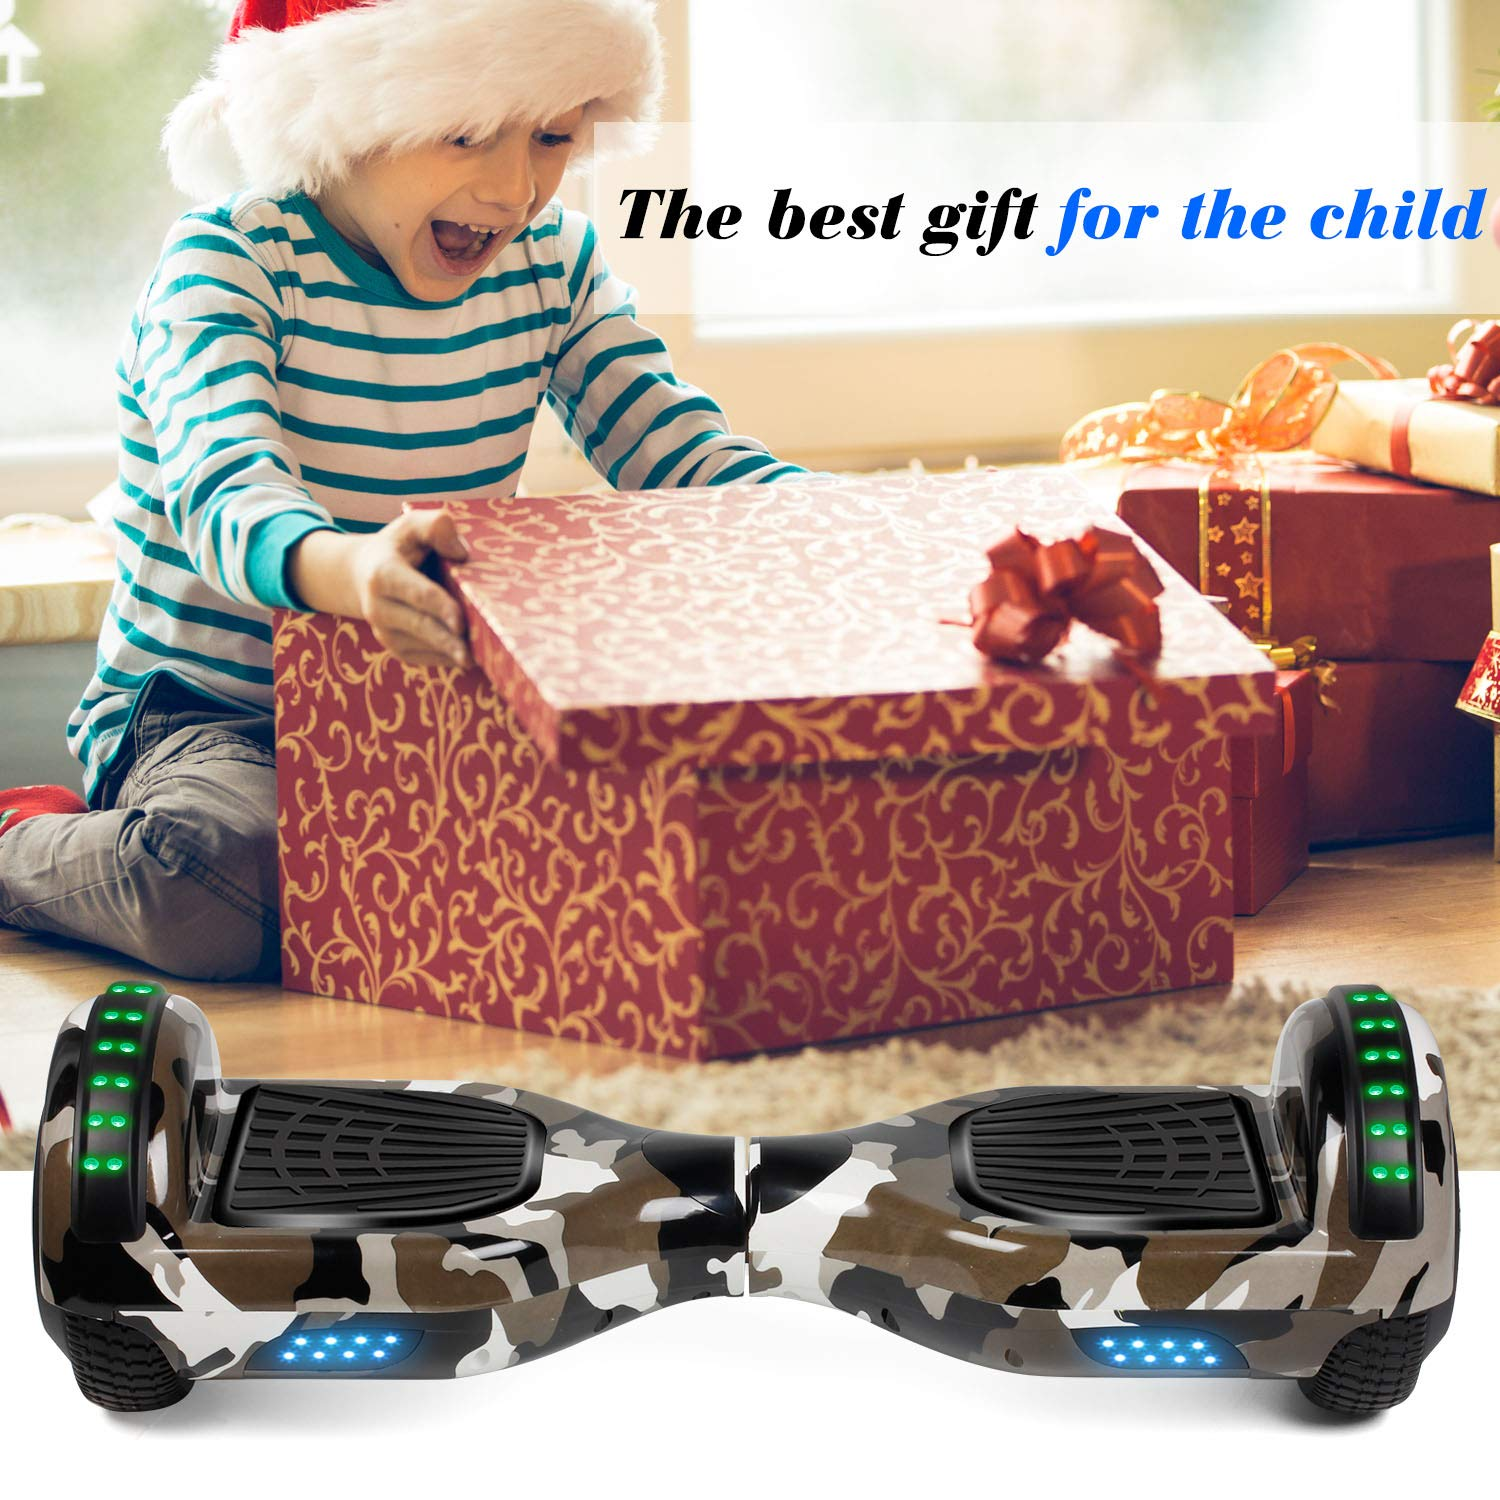 Hoverboard Self Balancing Scooter 6.5'' Two-Wheel Self Balancing Hoverboard with Bluetooth Speaker and LED Lights Electric Scooter for Adult Kids Gift UL 2272 Certified Fun Edition - Desert Camo by SISIGAD (Image #6)